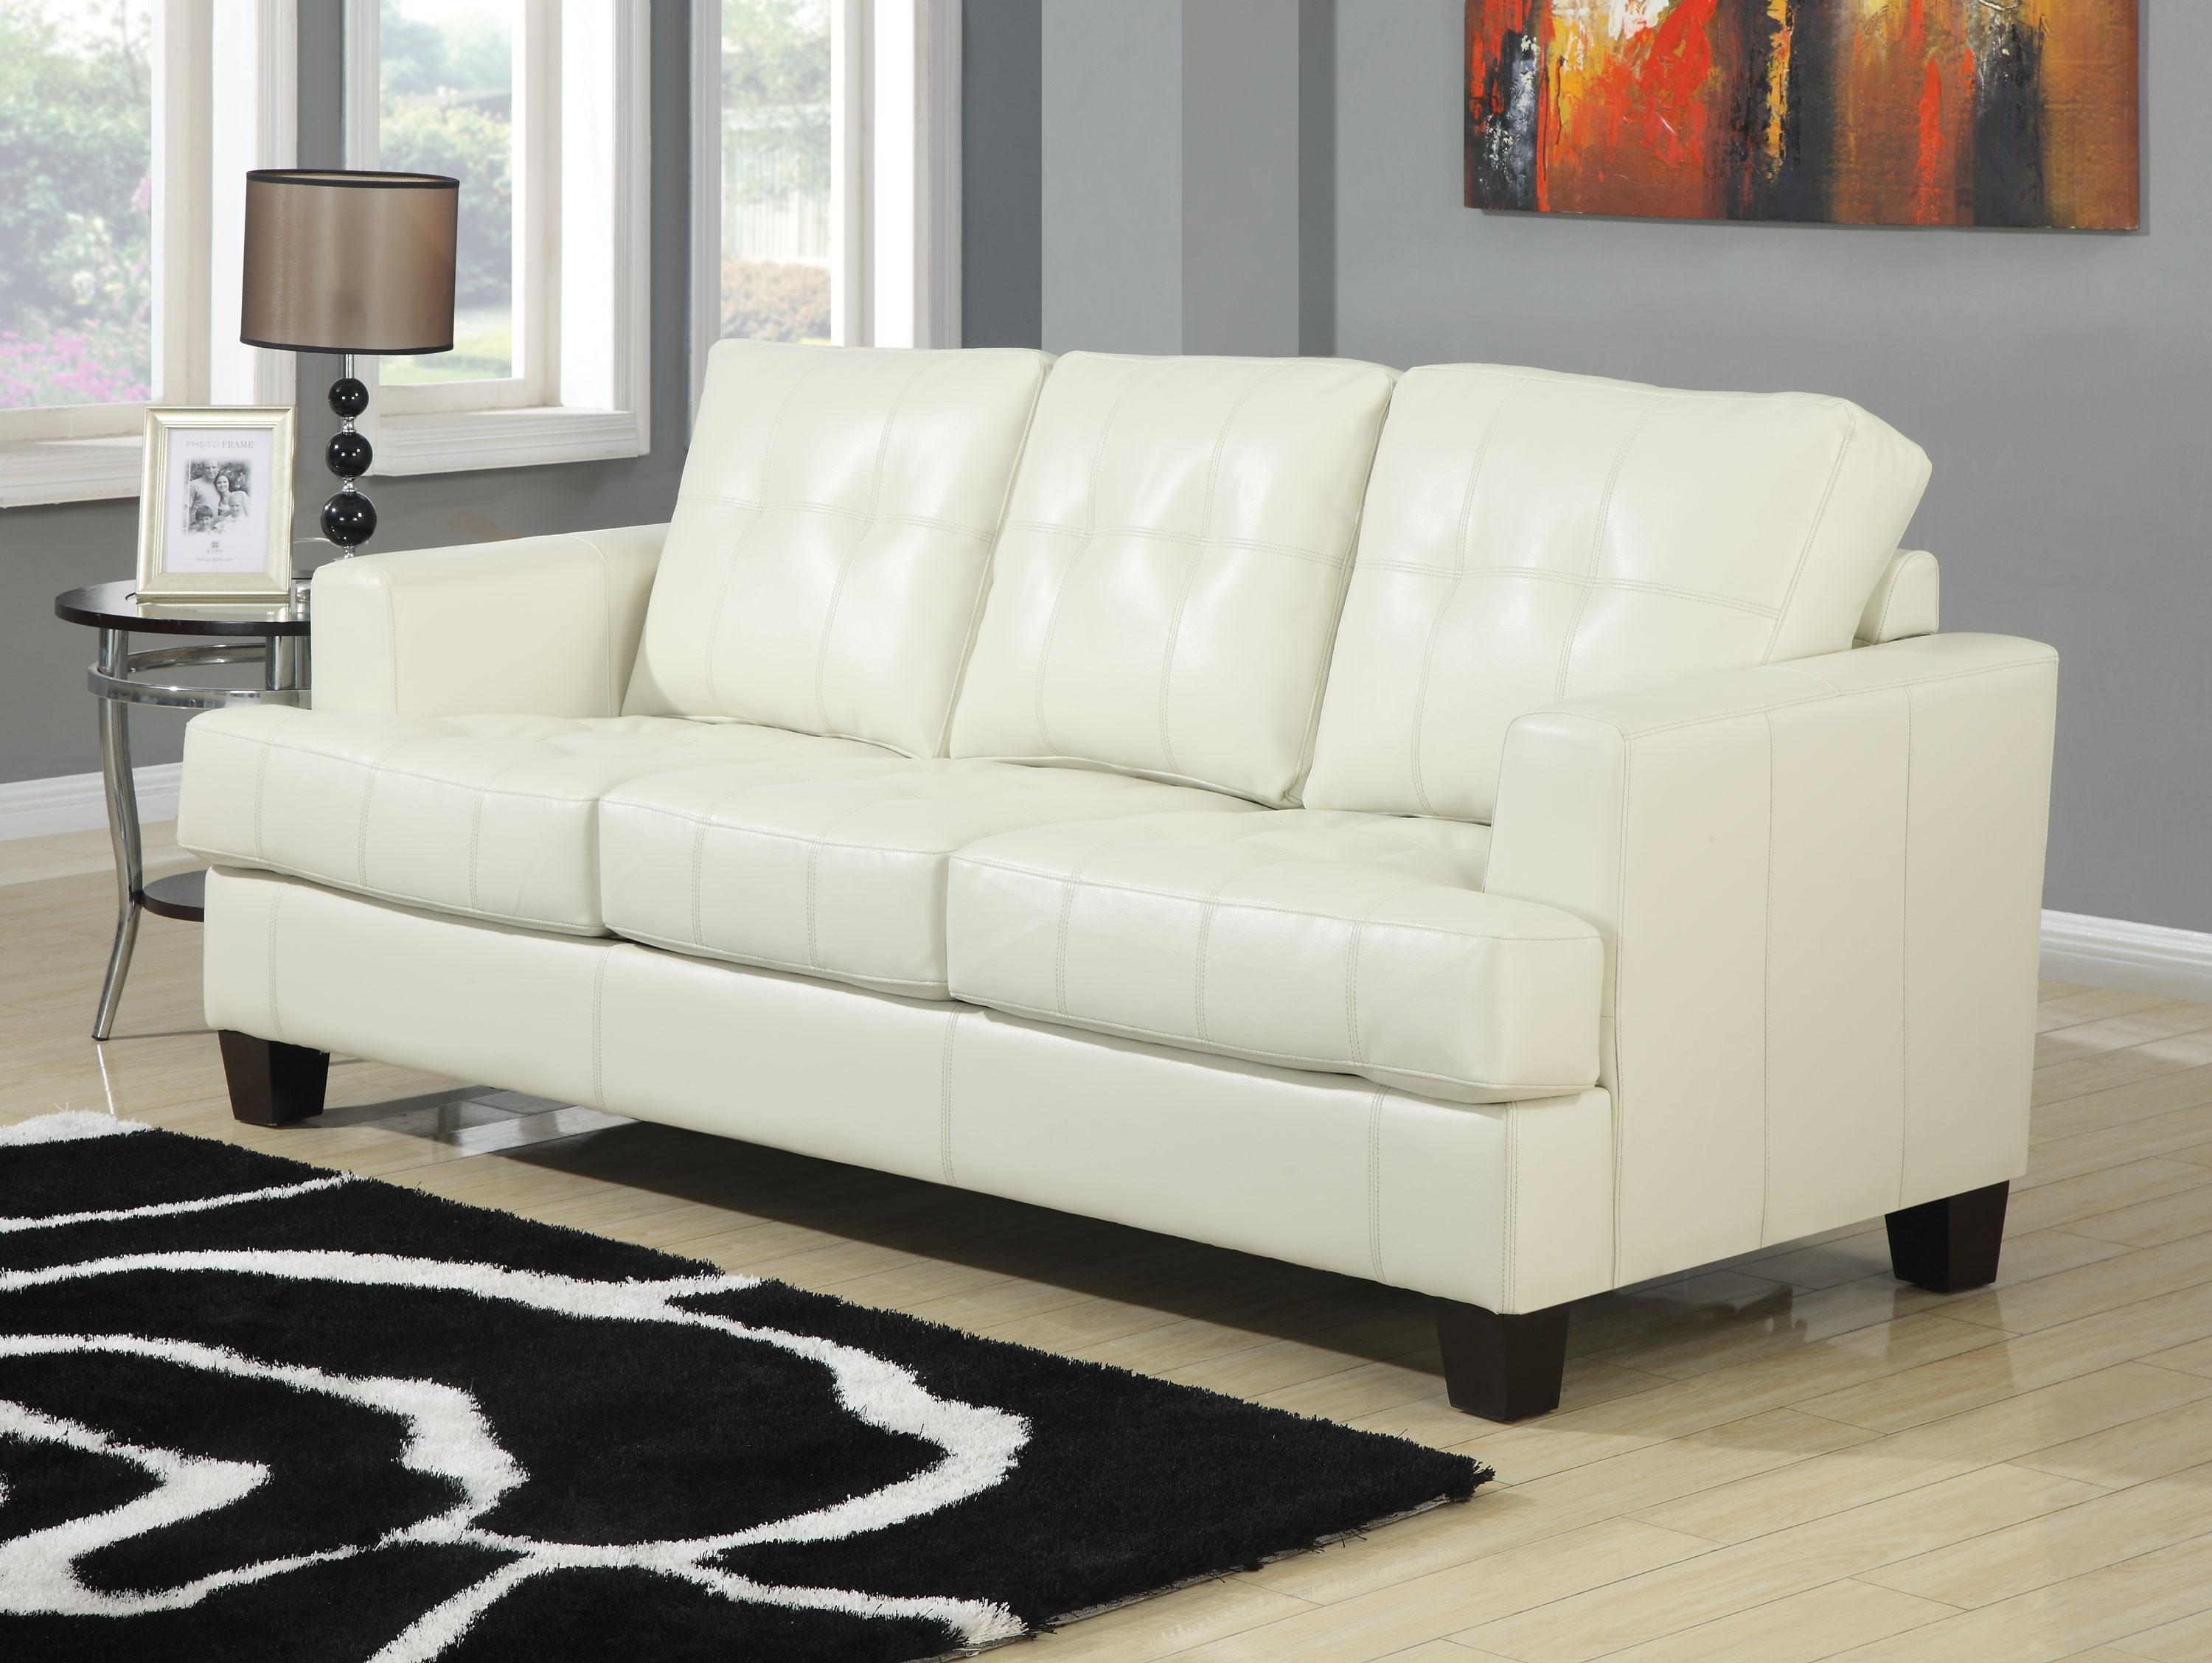 20 Best Collection of Cream Colored Sofa